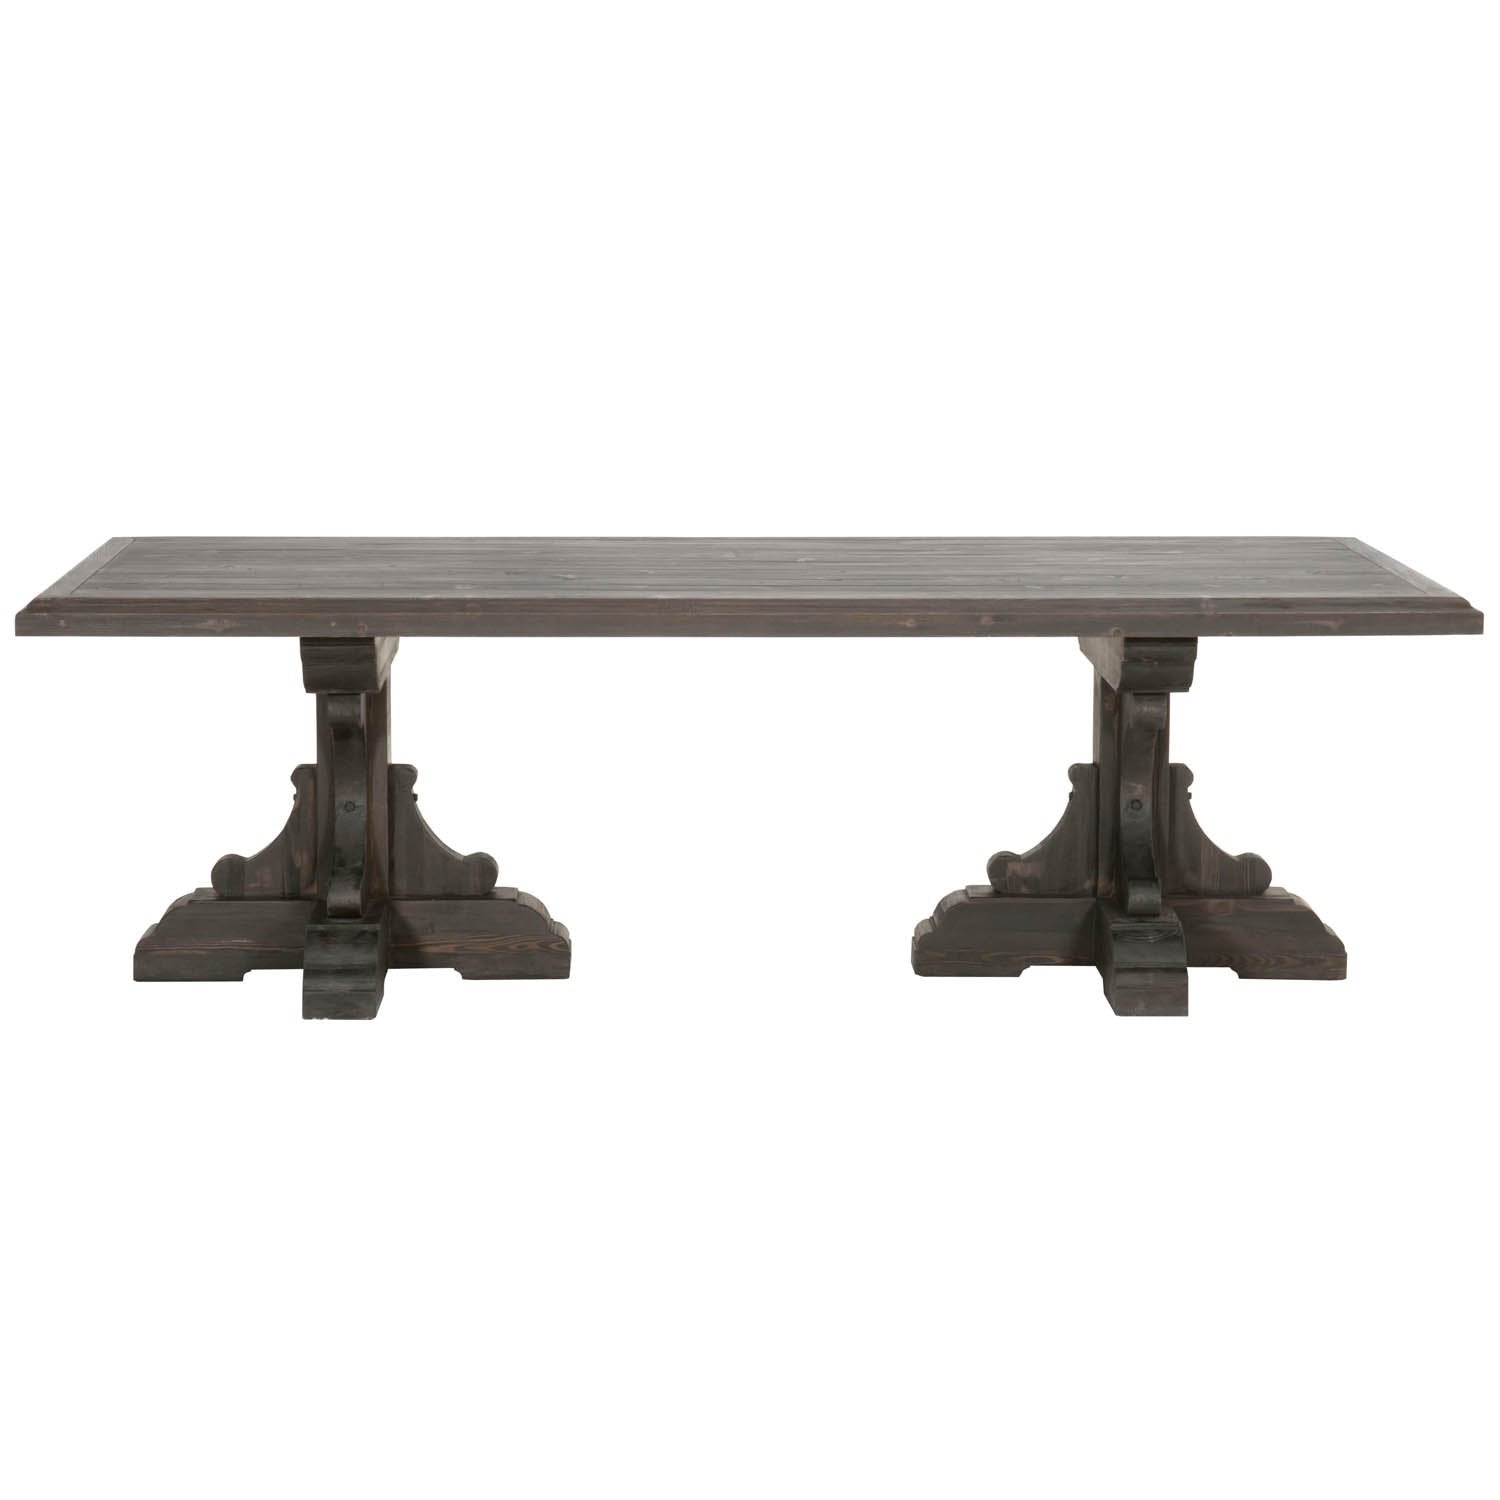 Bastille Rectangle Dining Table in Reclaimed Black Wash Pine